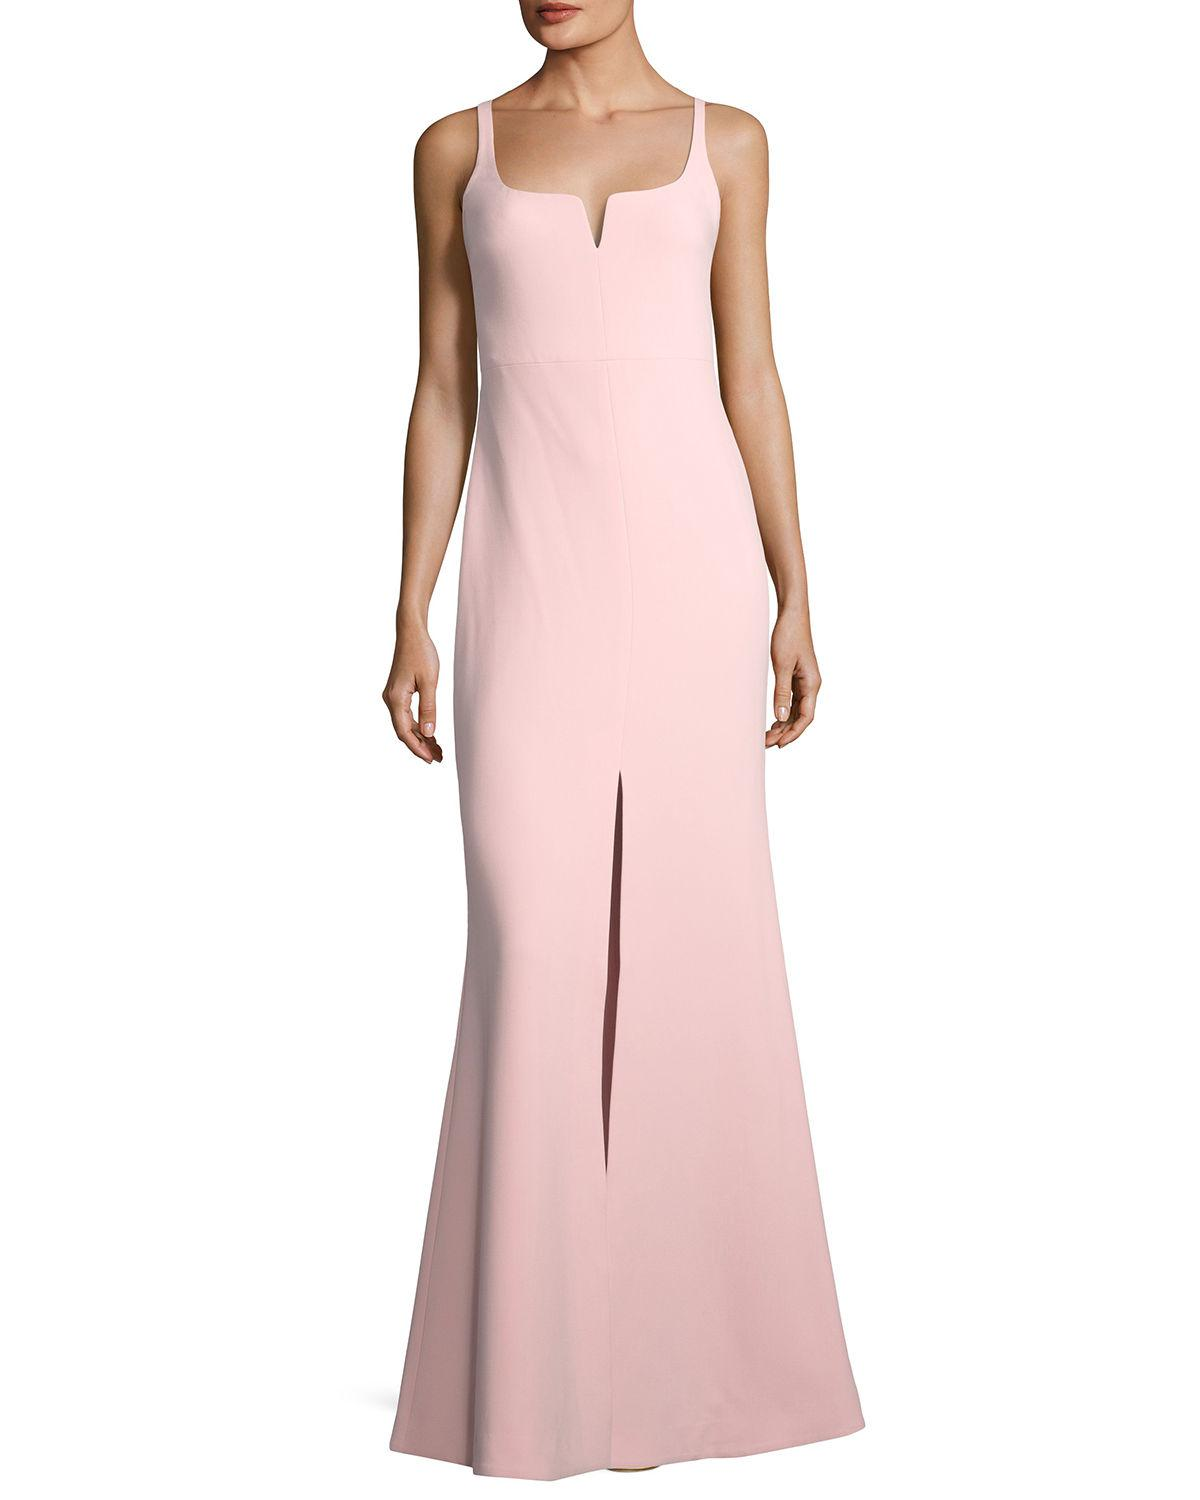 Lyst - Likely Constance Sleeveless Trumpet Evening Gown in Pink